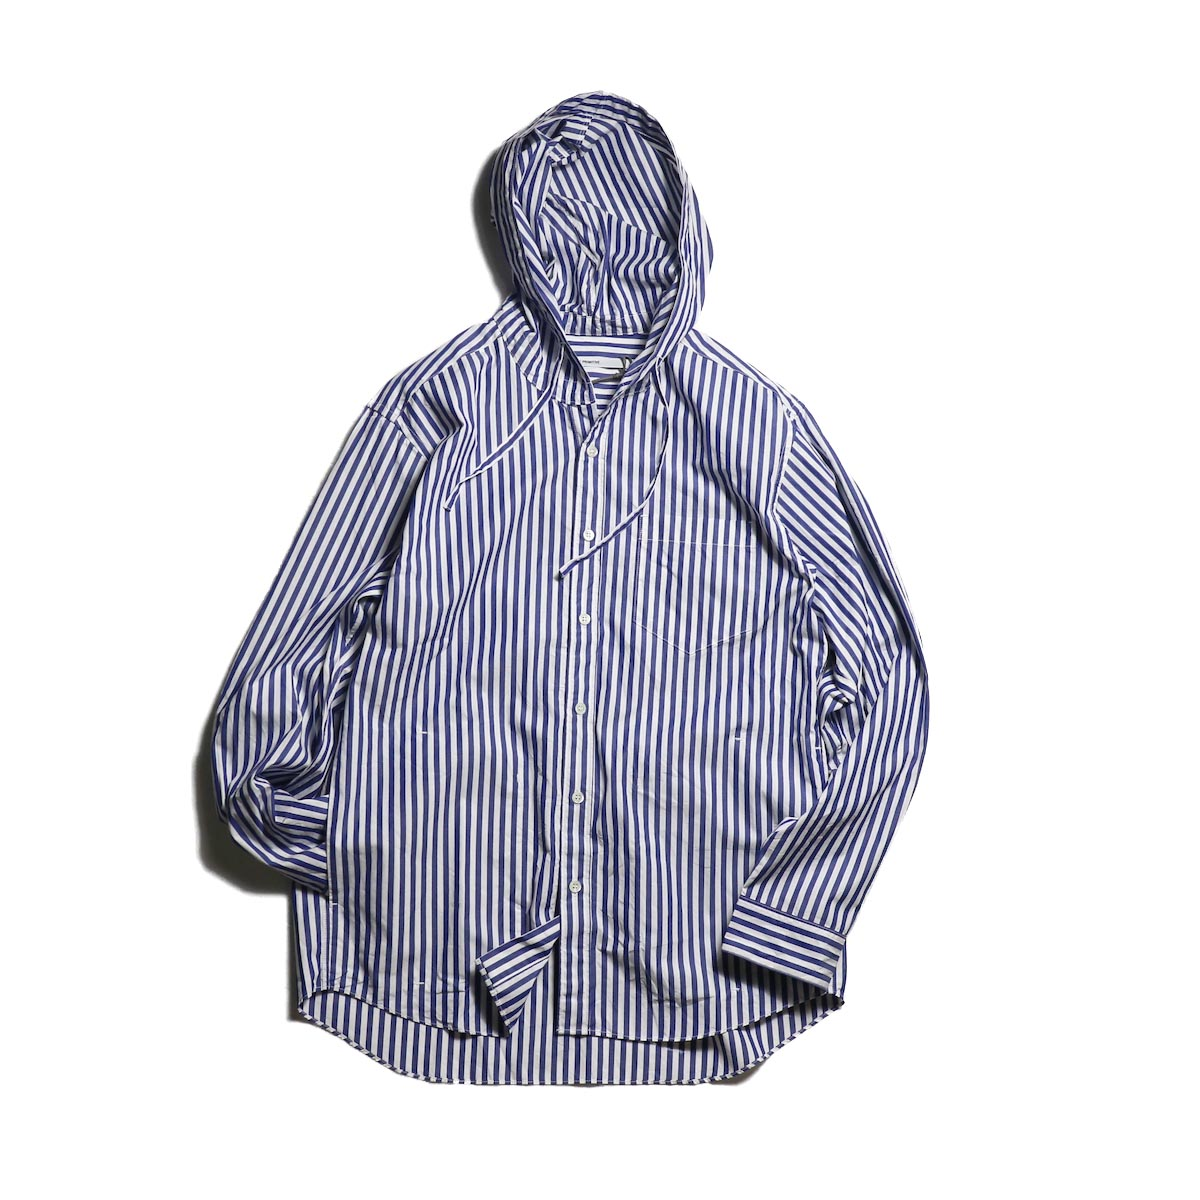 FUTURE PRIMITIVE / FP SUBTROPIC HOODIE SHIRT (Blue Stripe)